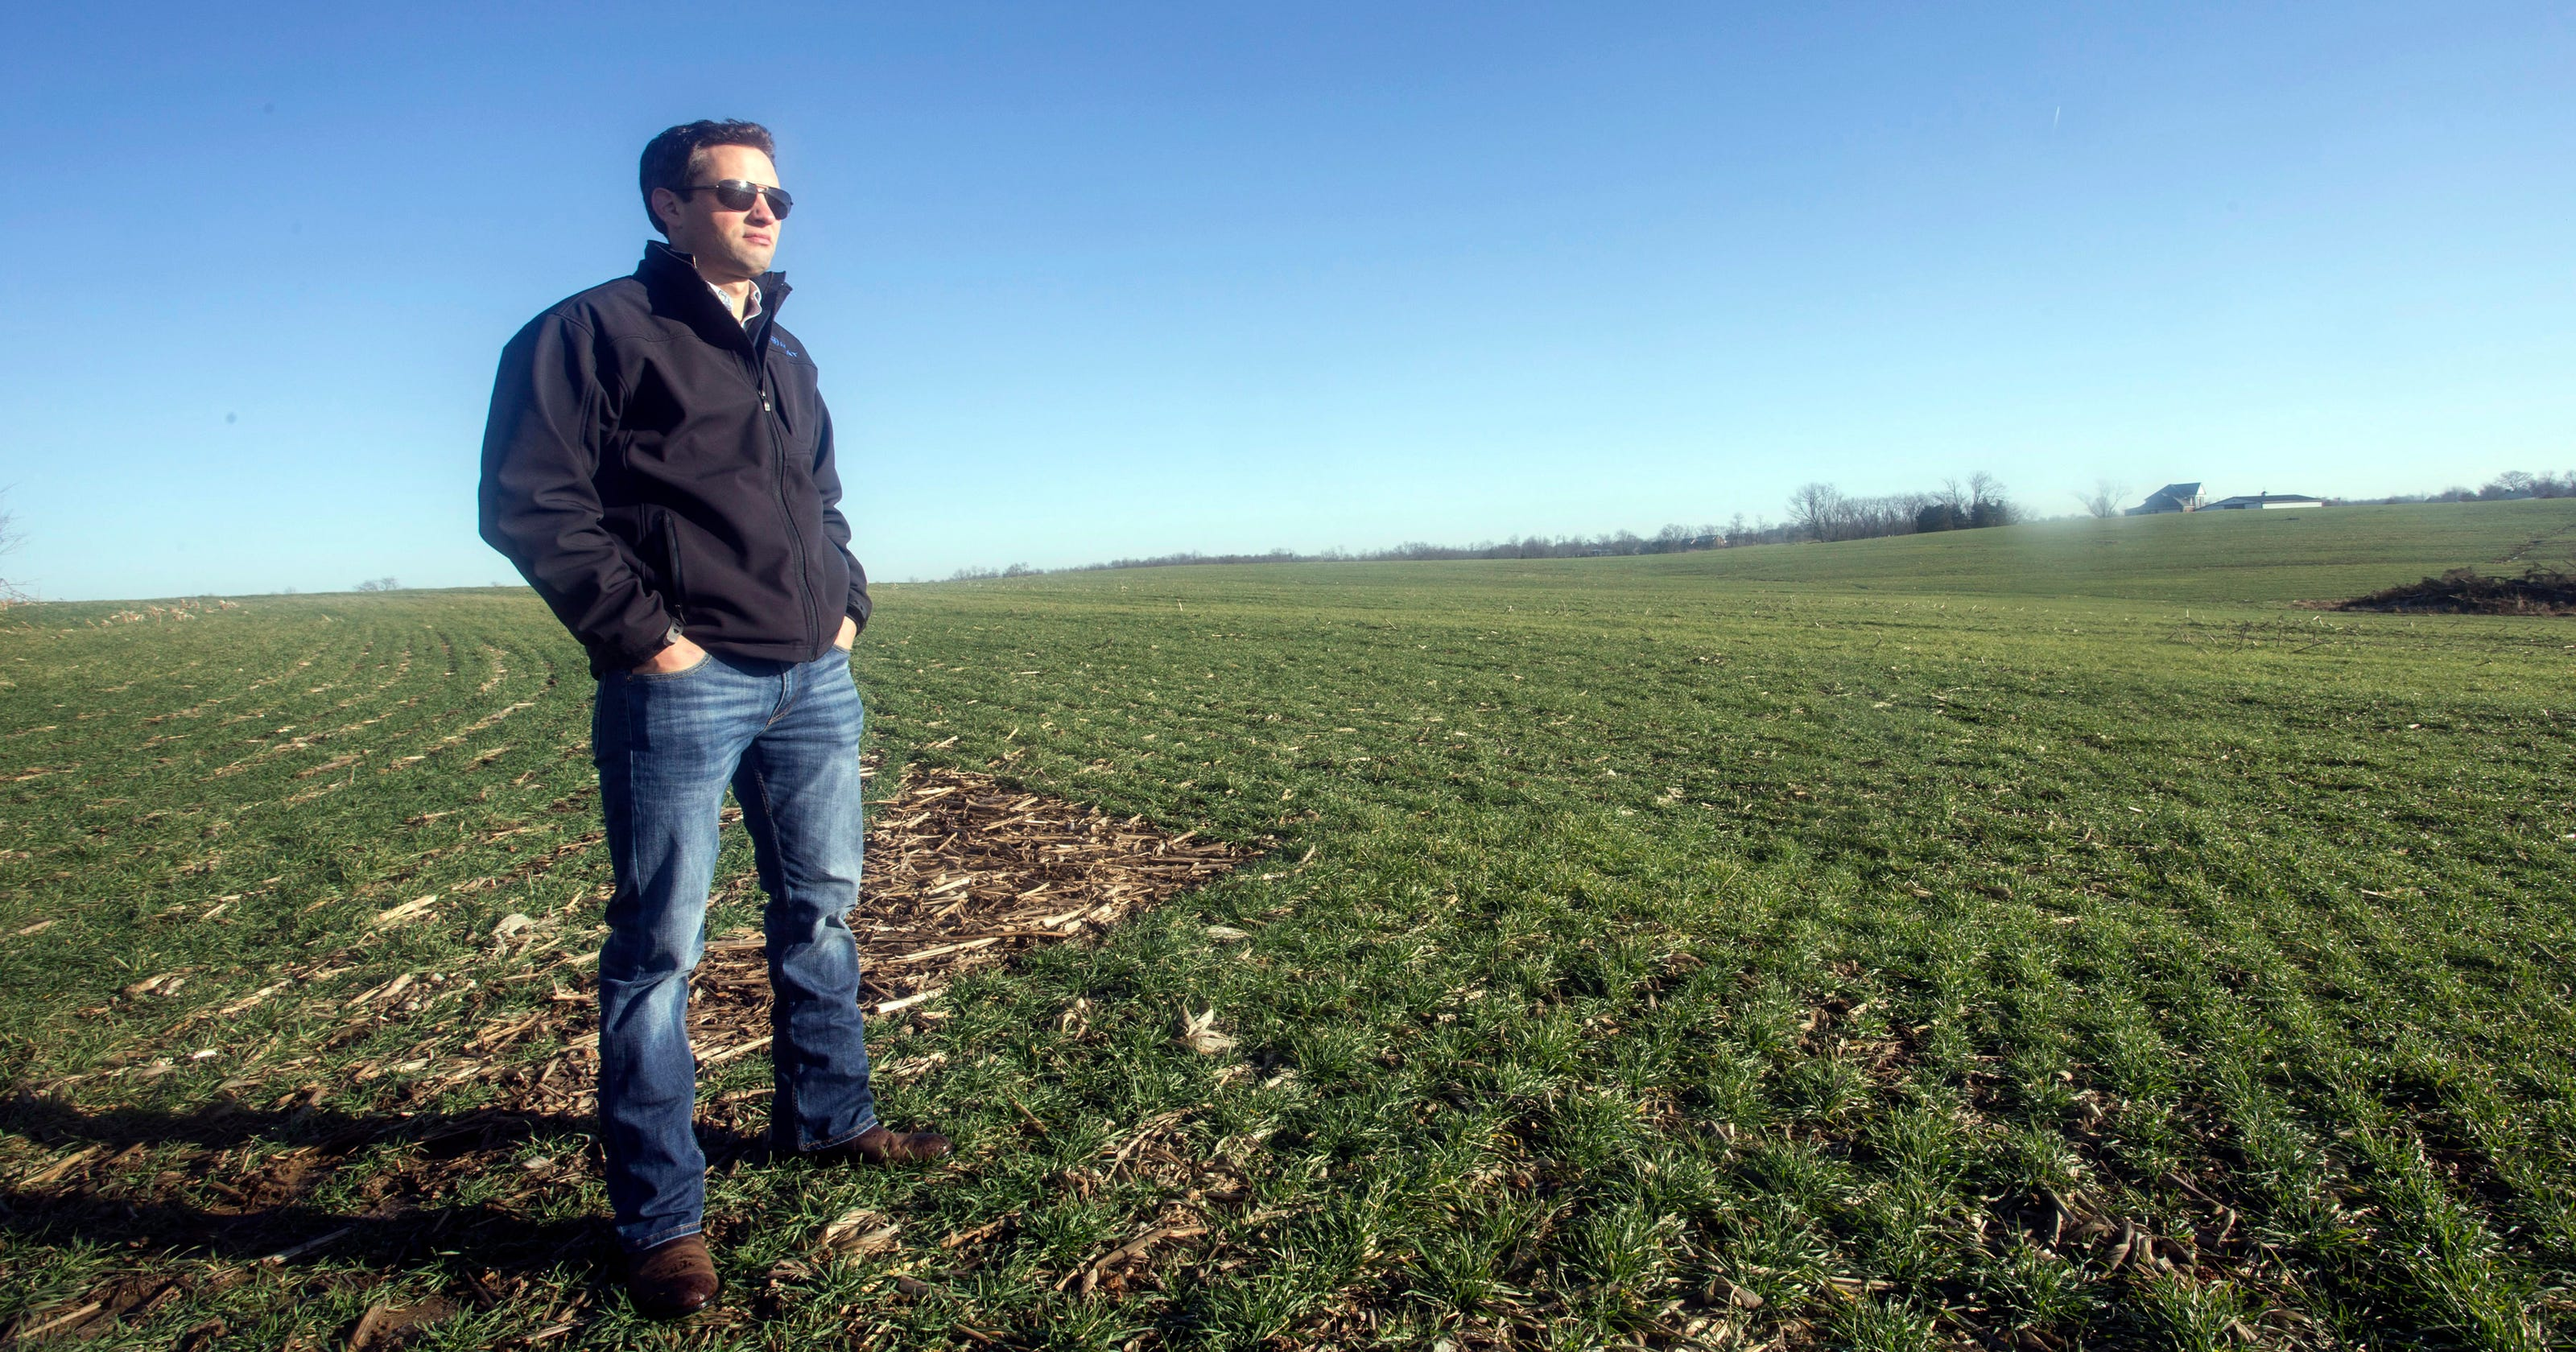 Millionaire investors bet on Ky farms